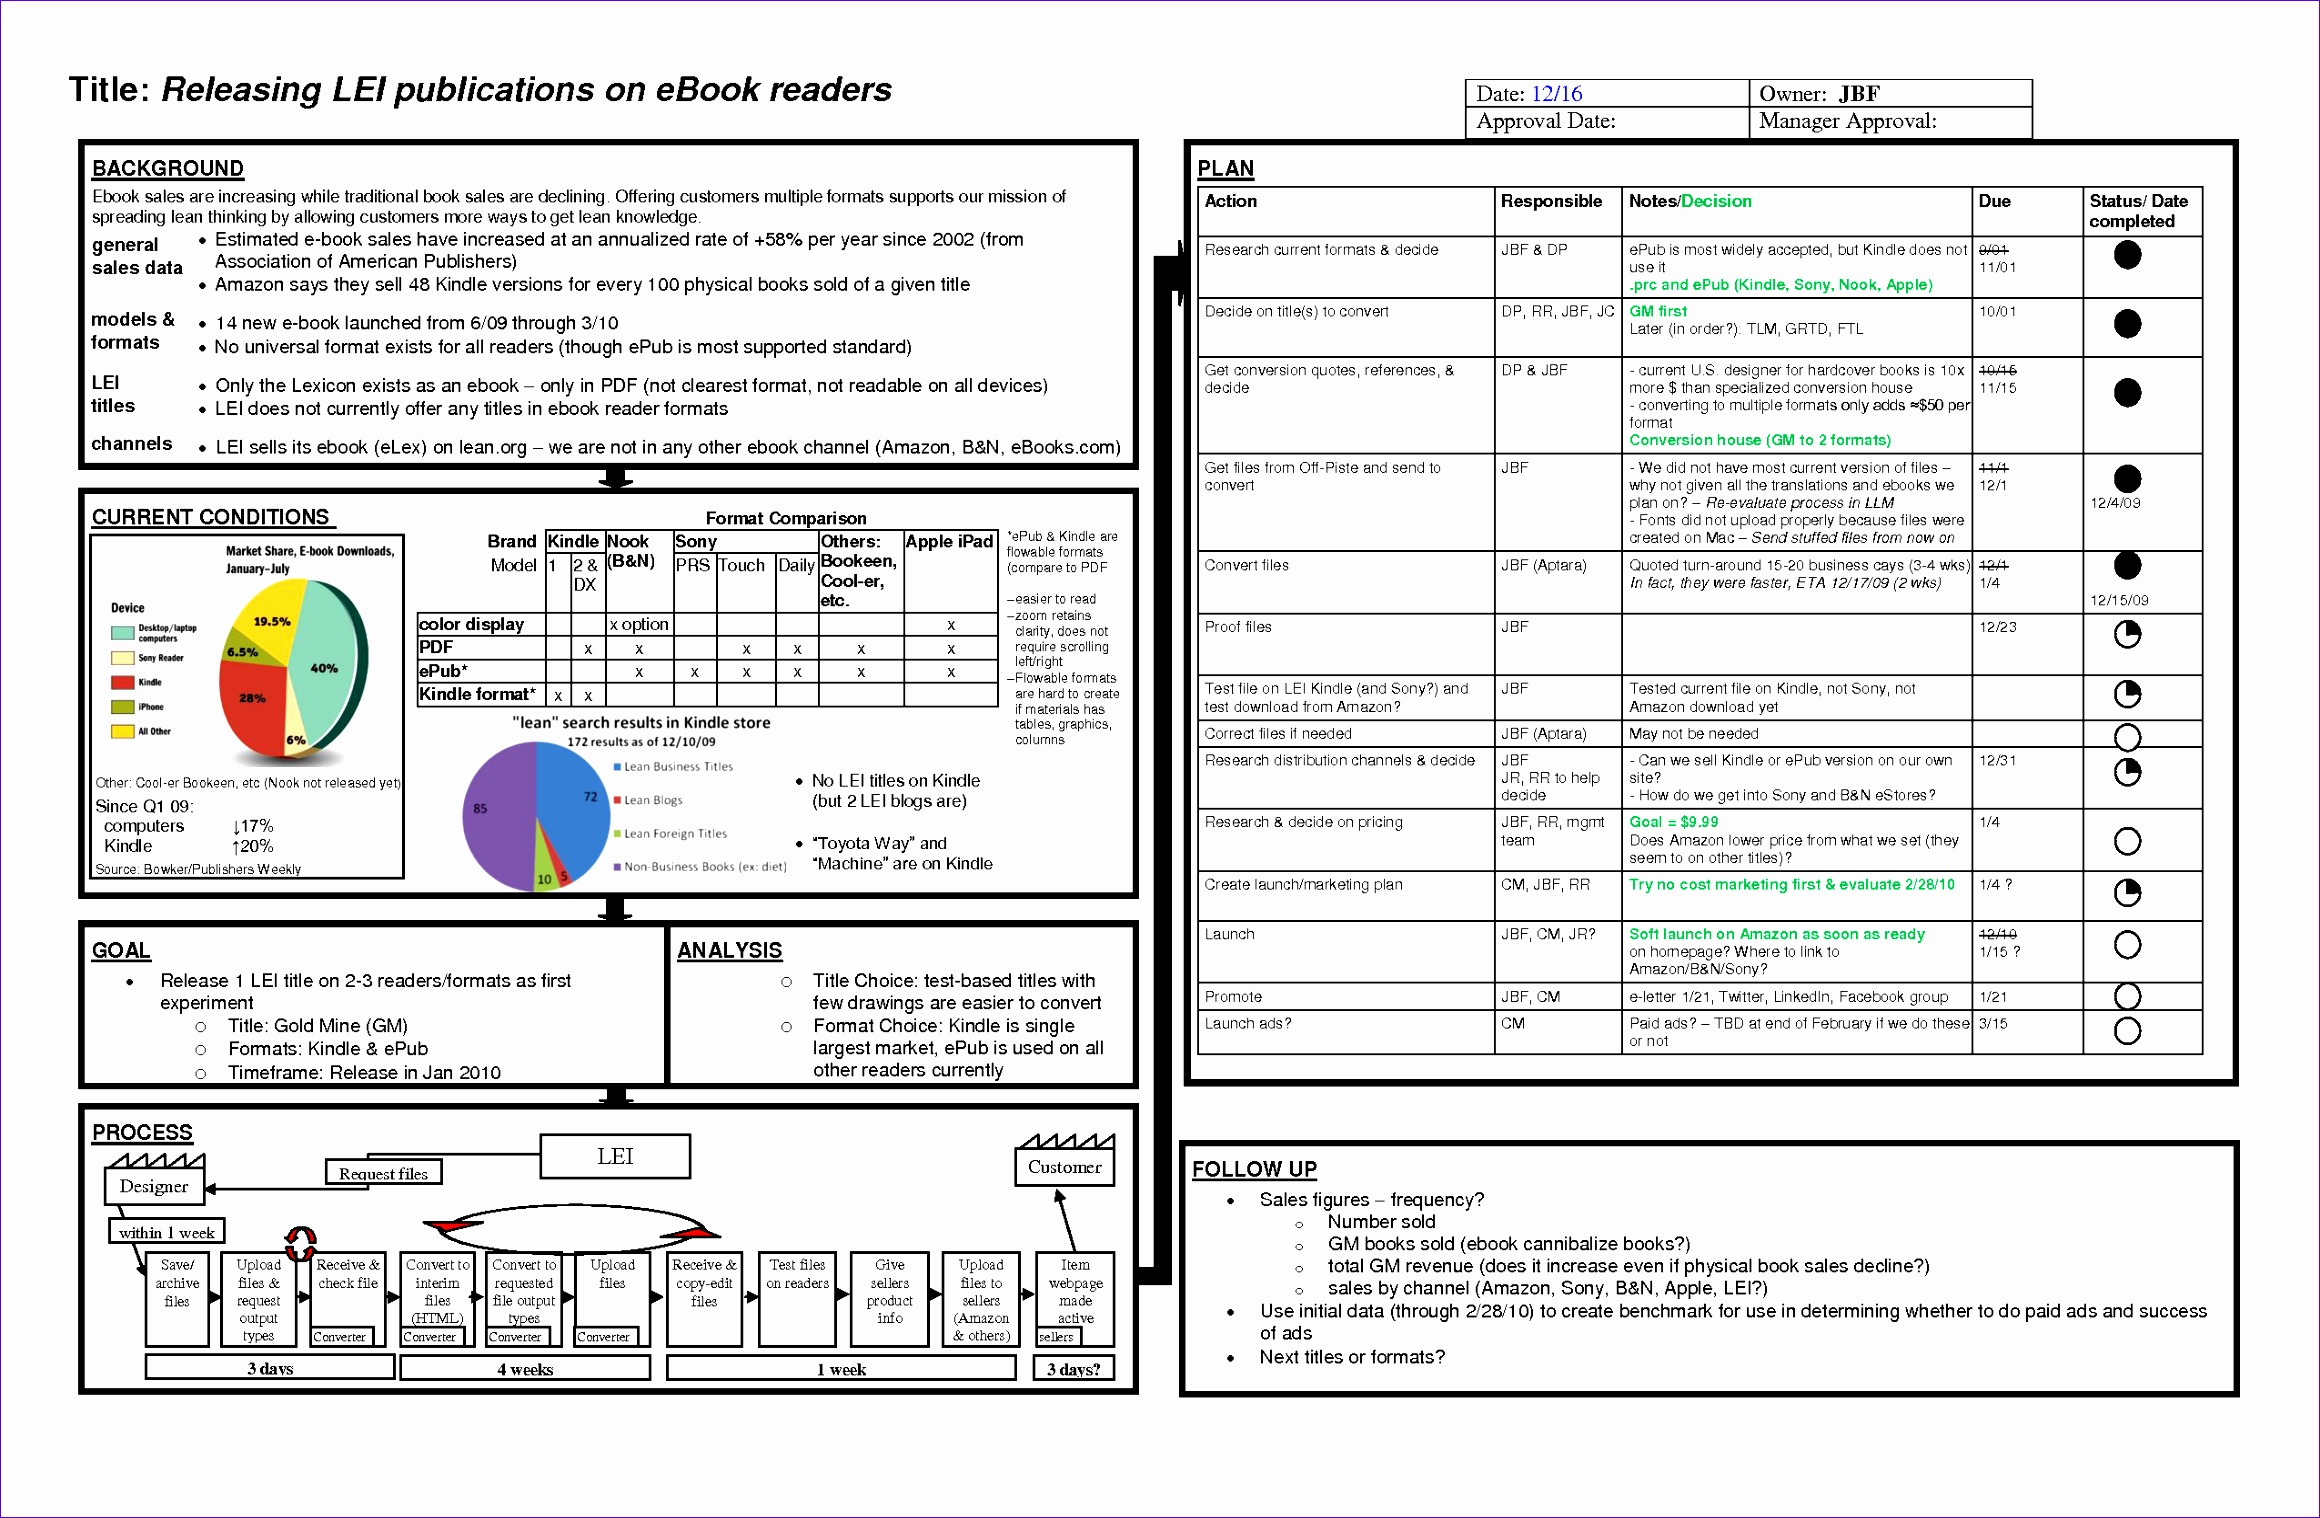 Project Management Status Report Template Excel S9sjd